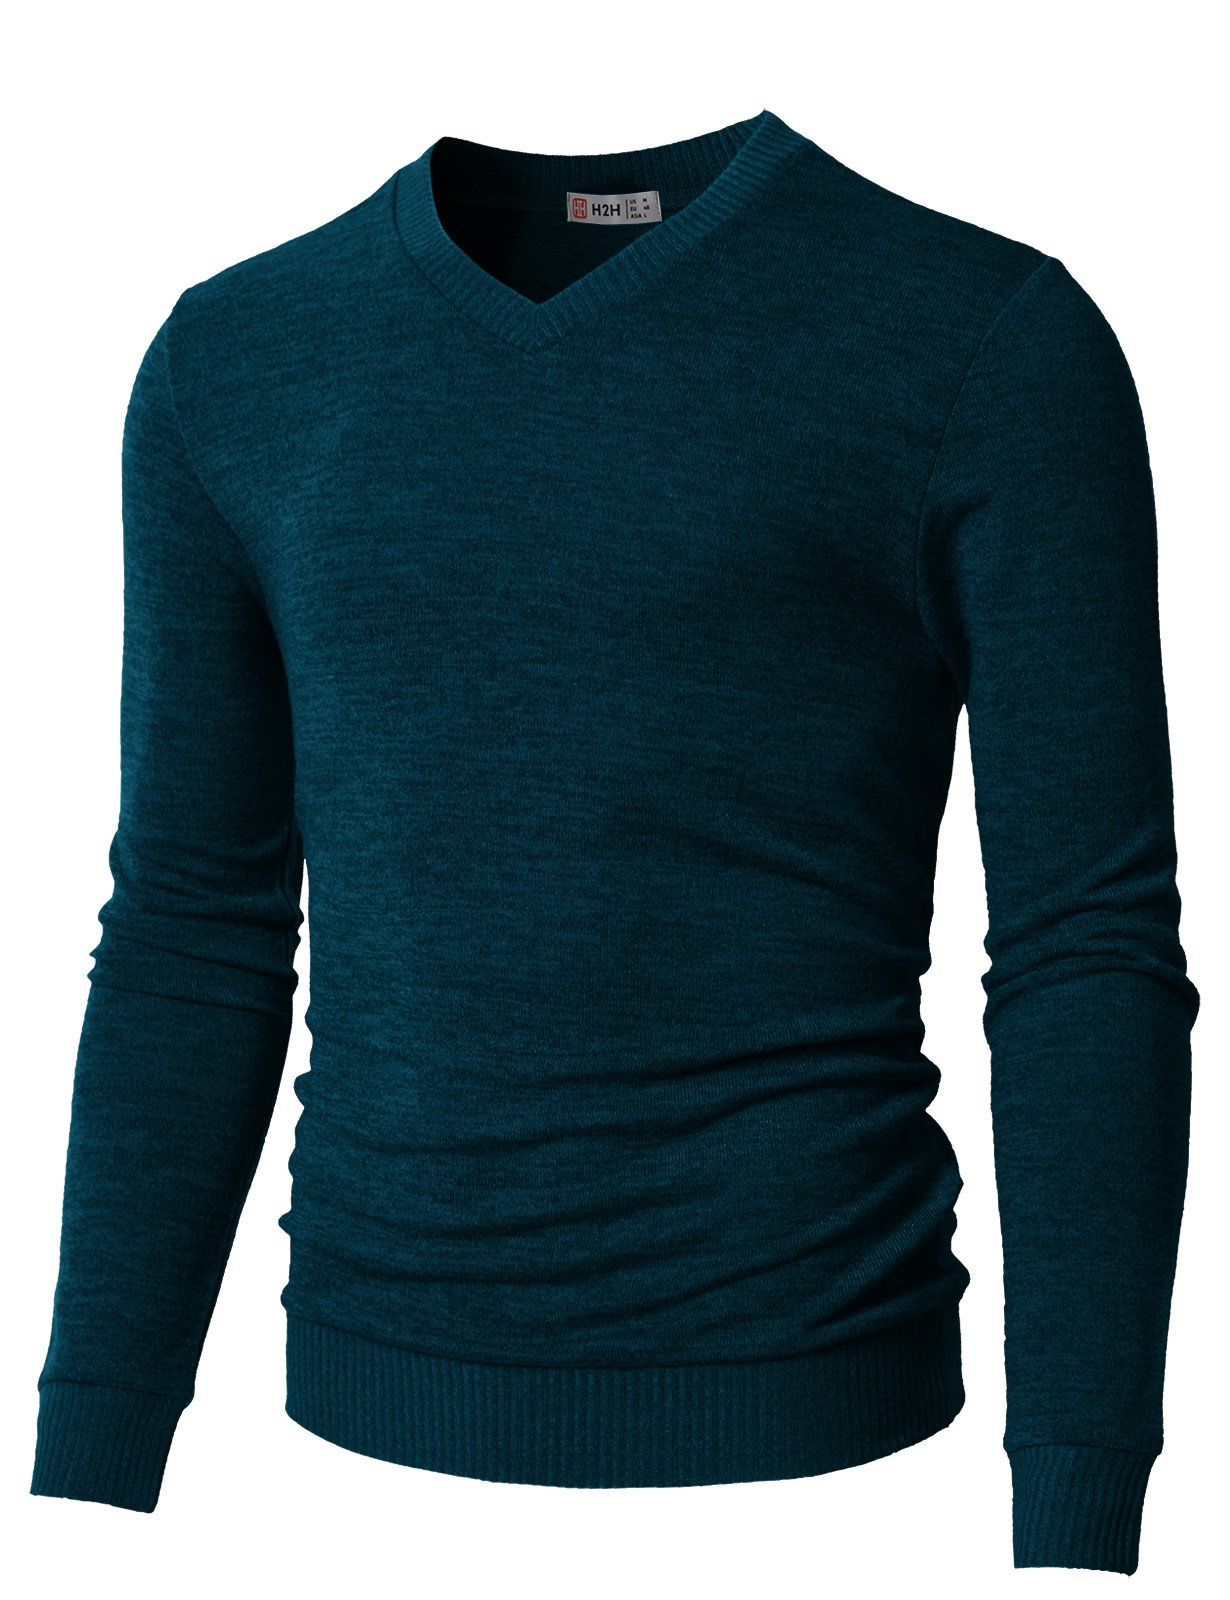 H2H Men's Quarter Zip Marled Sweaters Green US XL/Asia 2XL (CMOSWL018) by H2H